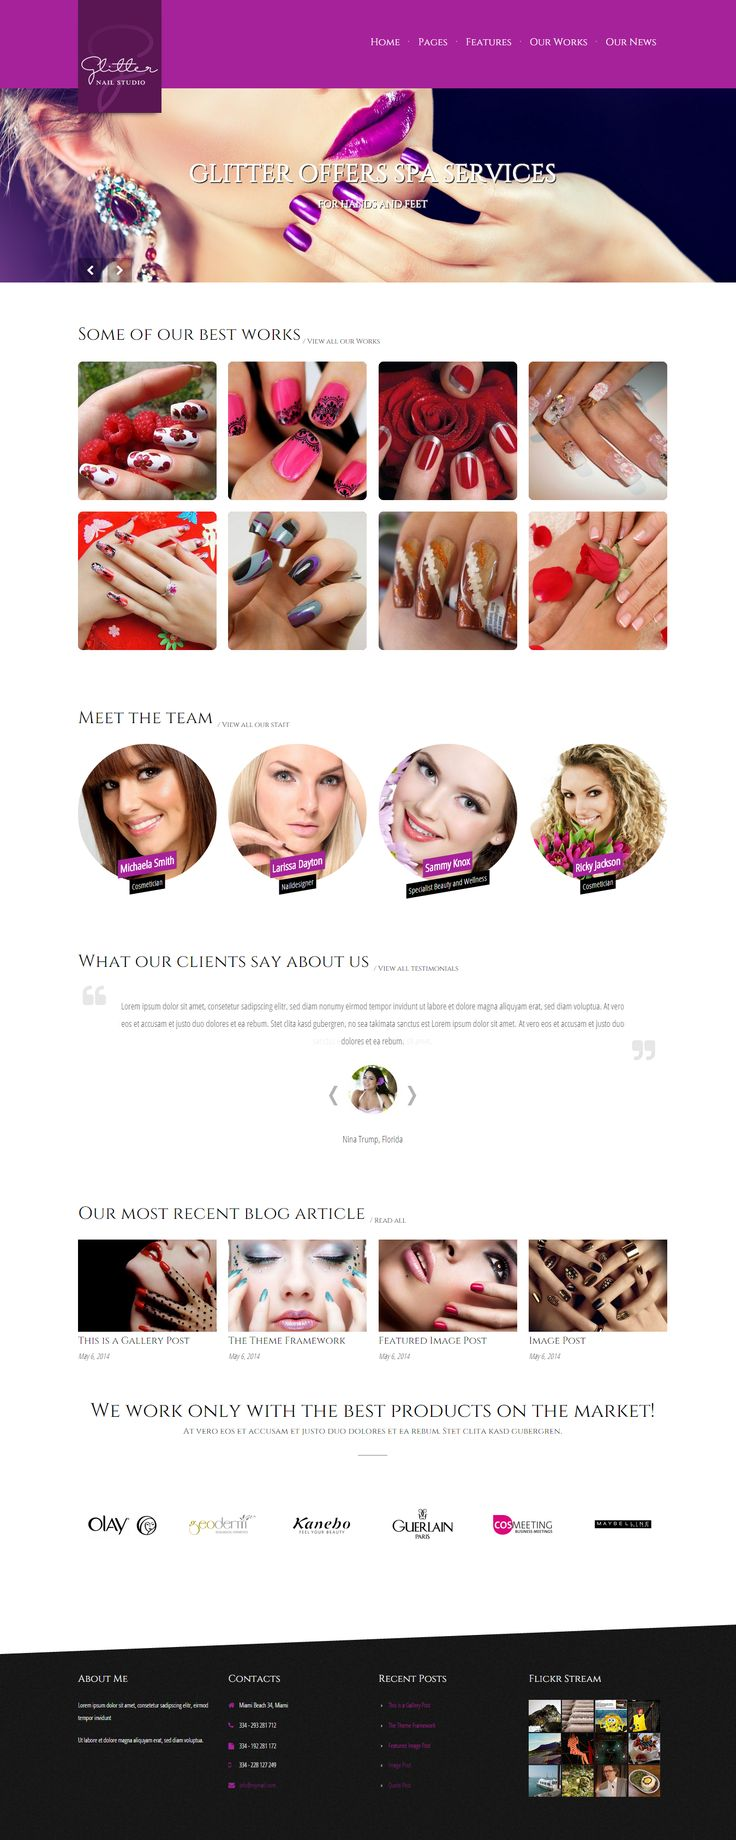 New WordPress Beauty theme: Glitter - specially made for Nail Designer and other beauty related companies who need a portfolio and want to showcase their works.  http://7theme.net/downloads/glitter-wordpress-theme-for-nail-salons/